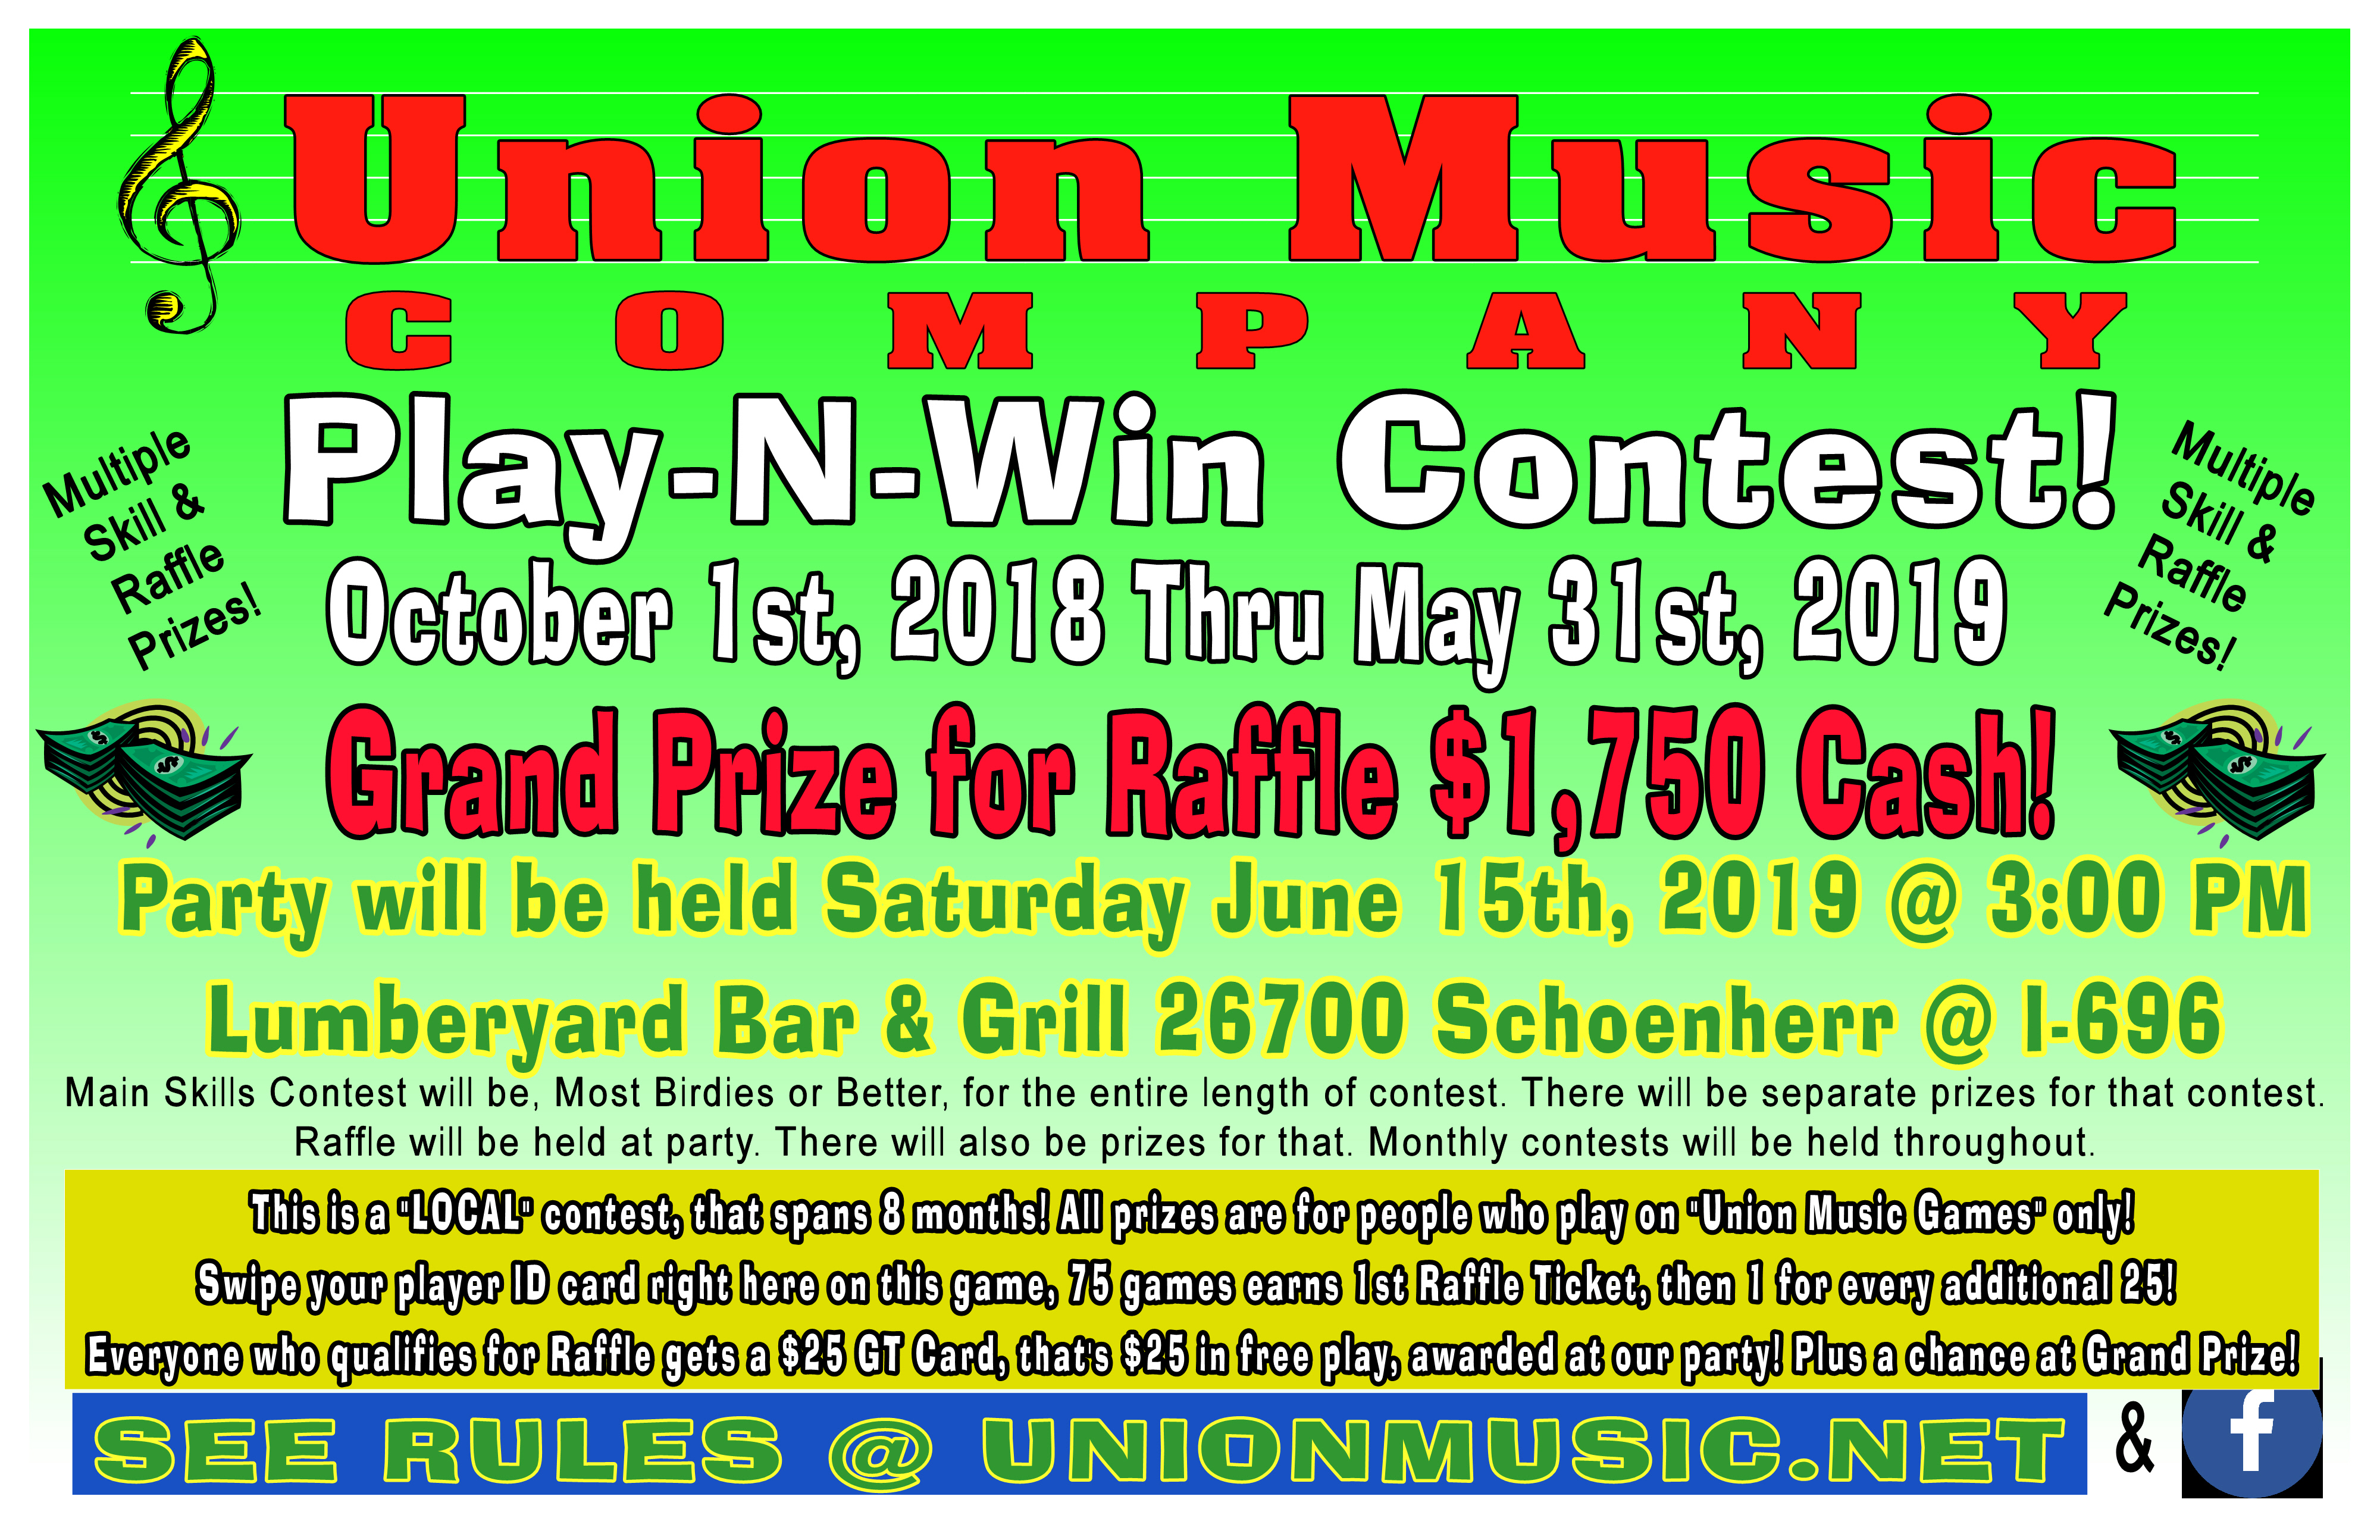 Tournaments by Union Music – Darts, Pool, and Vending for